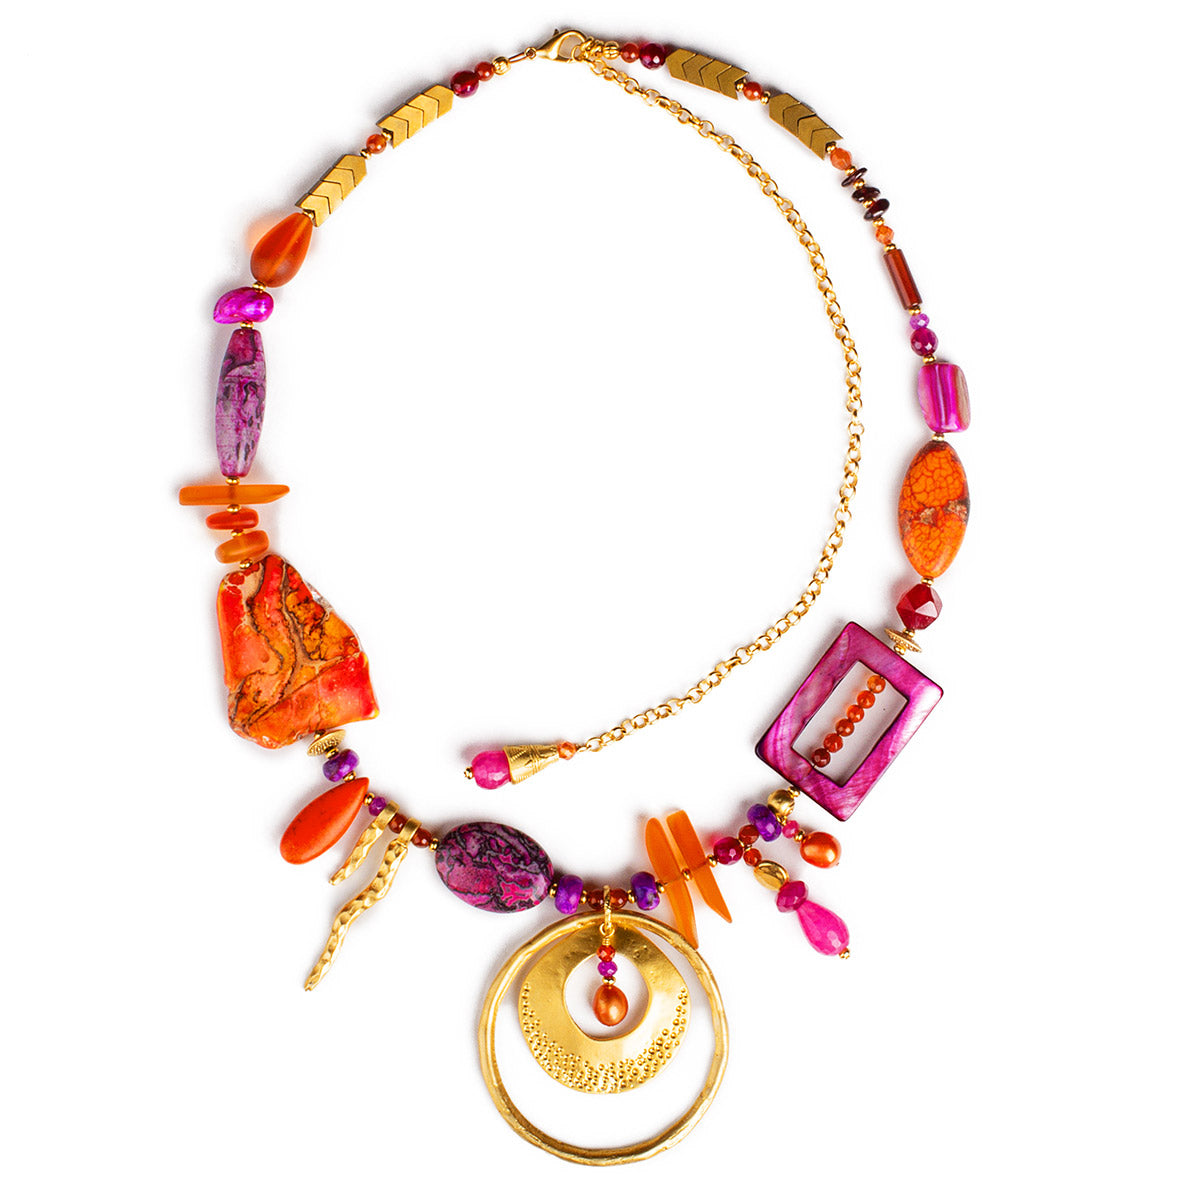 N°687 The Anemone Party 2 Statement Necklace